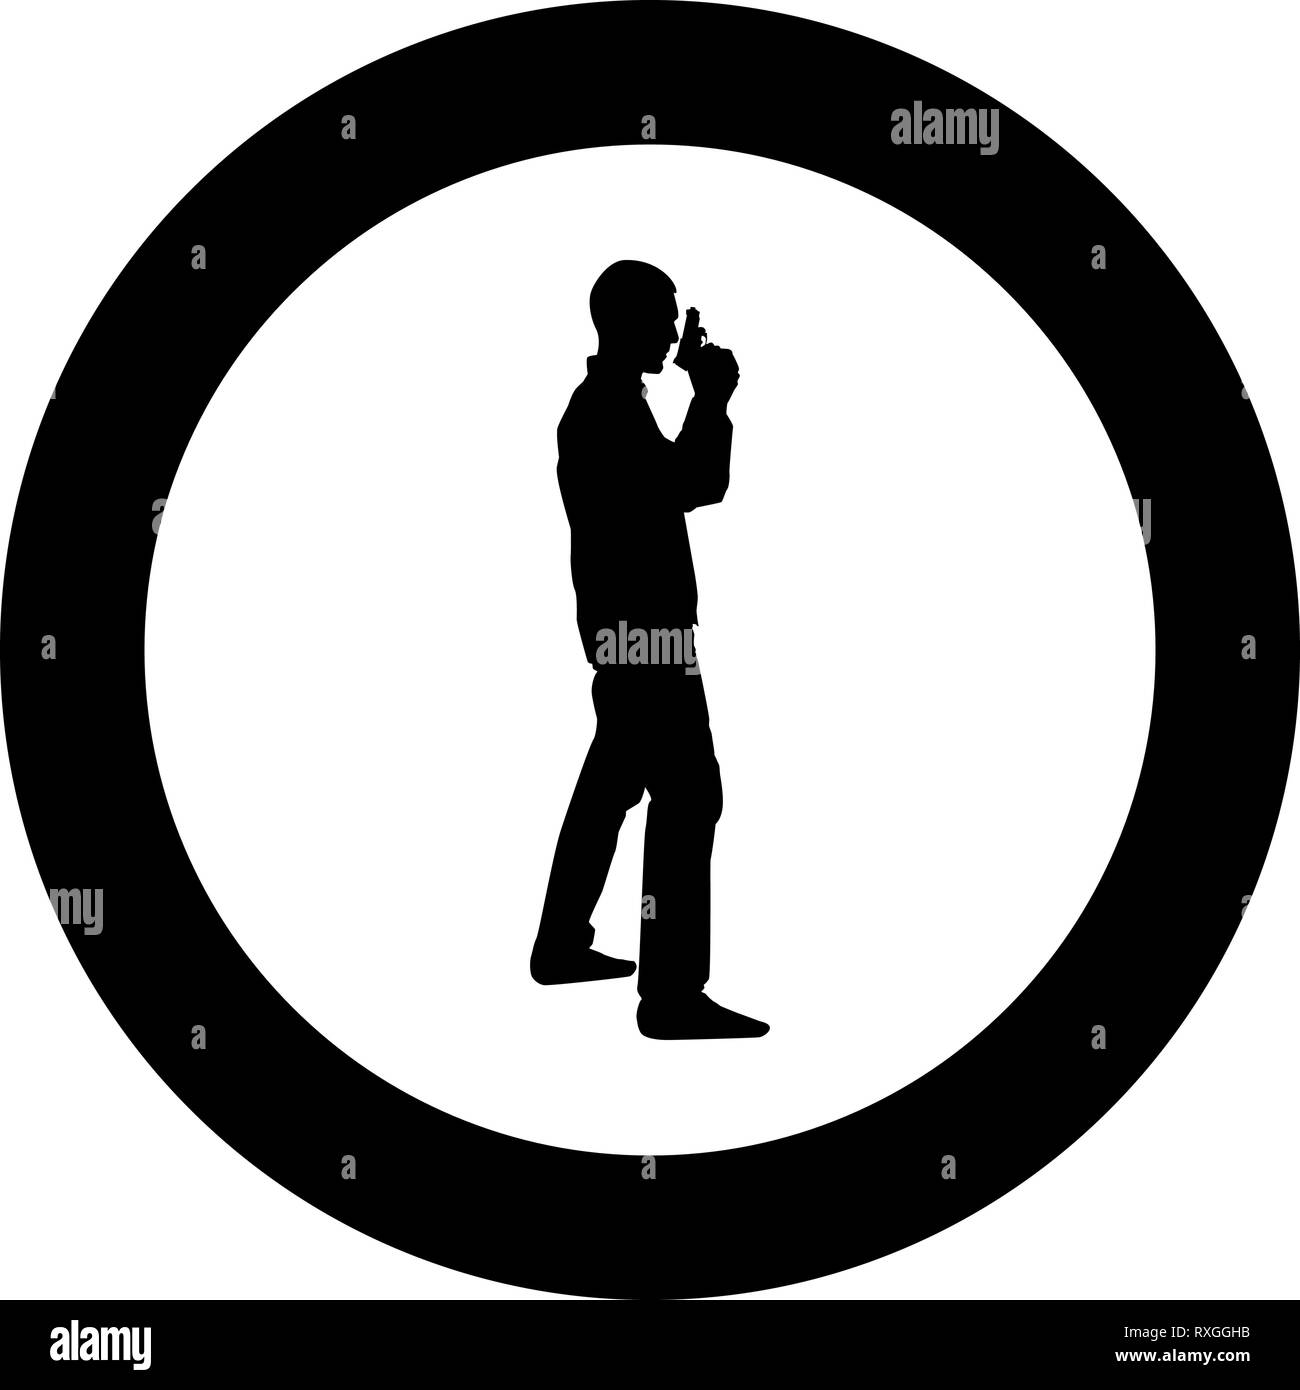 Man with gun Hazard concept icon black color vector in circle round illustration flat style simple image Stock Vector